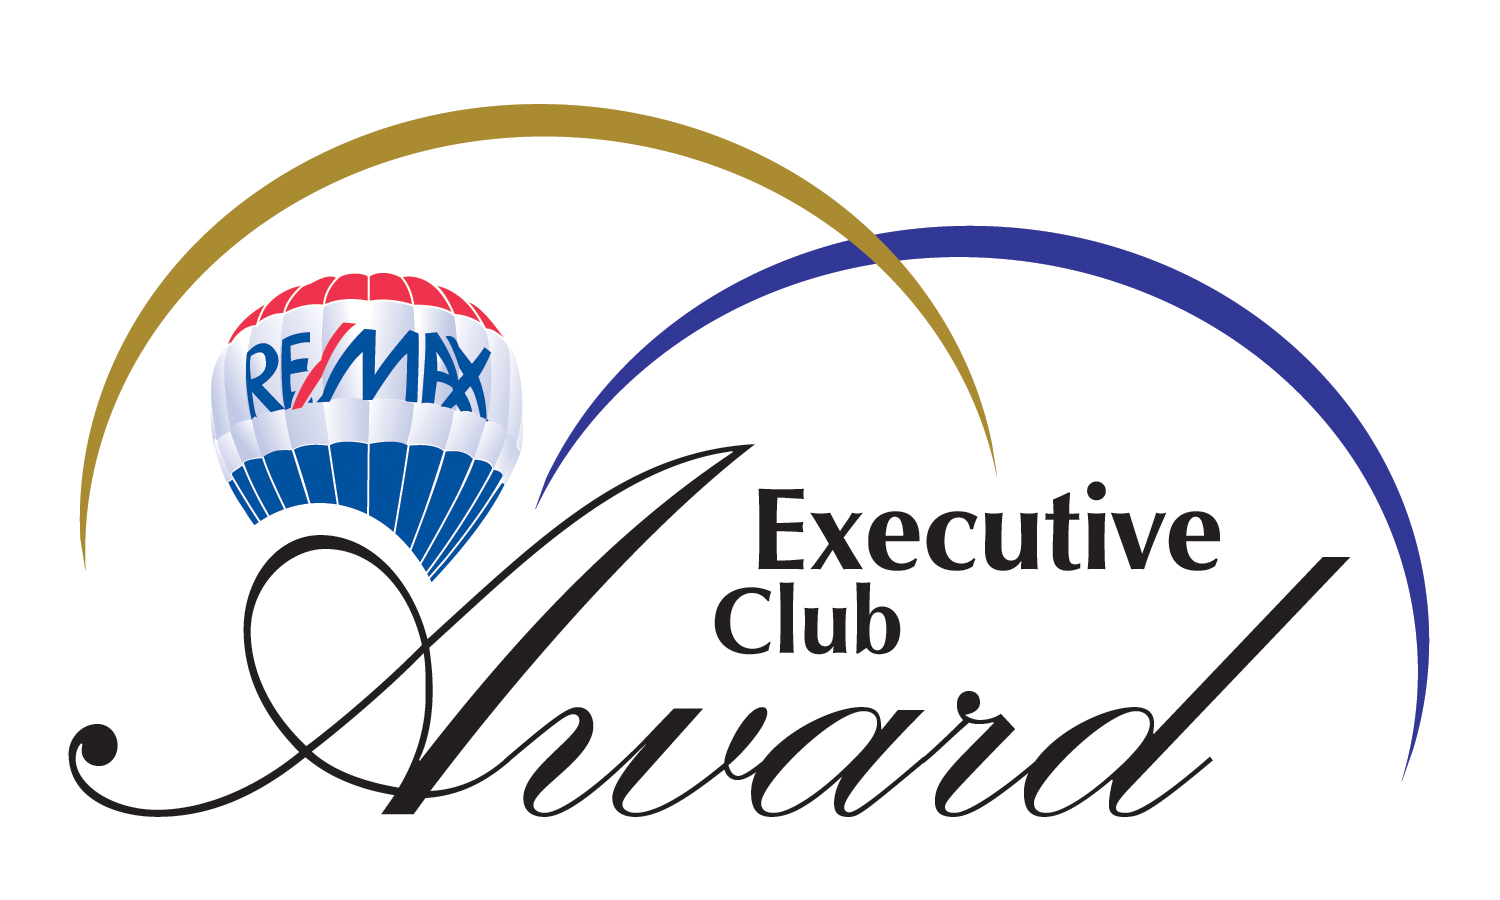 Executive Club Award for Dan Firks